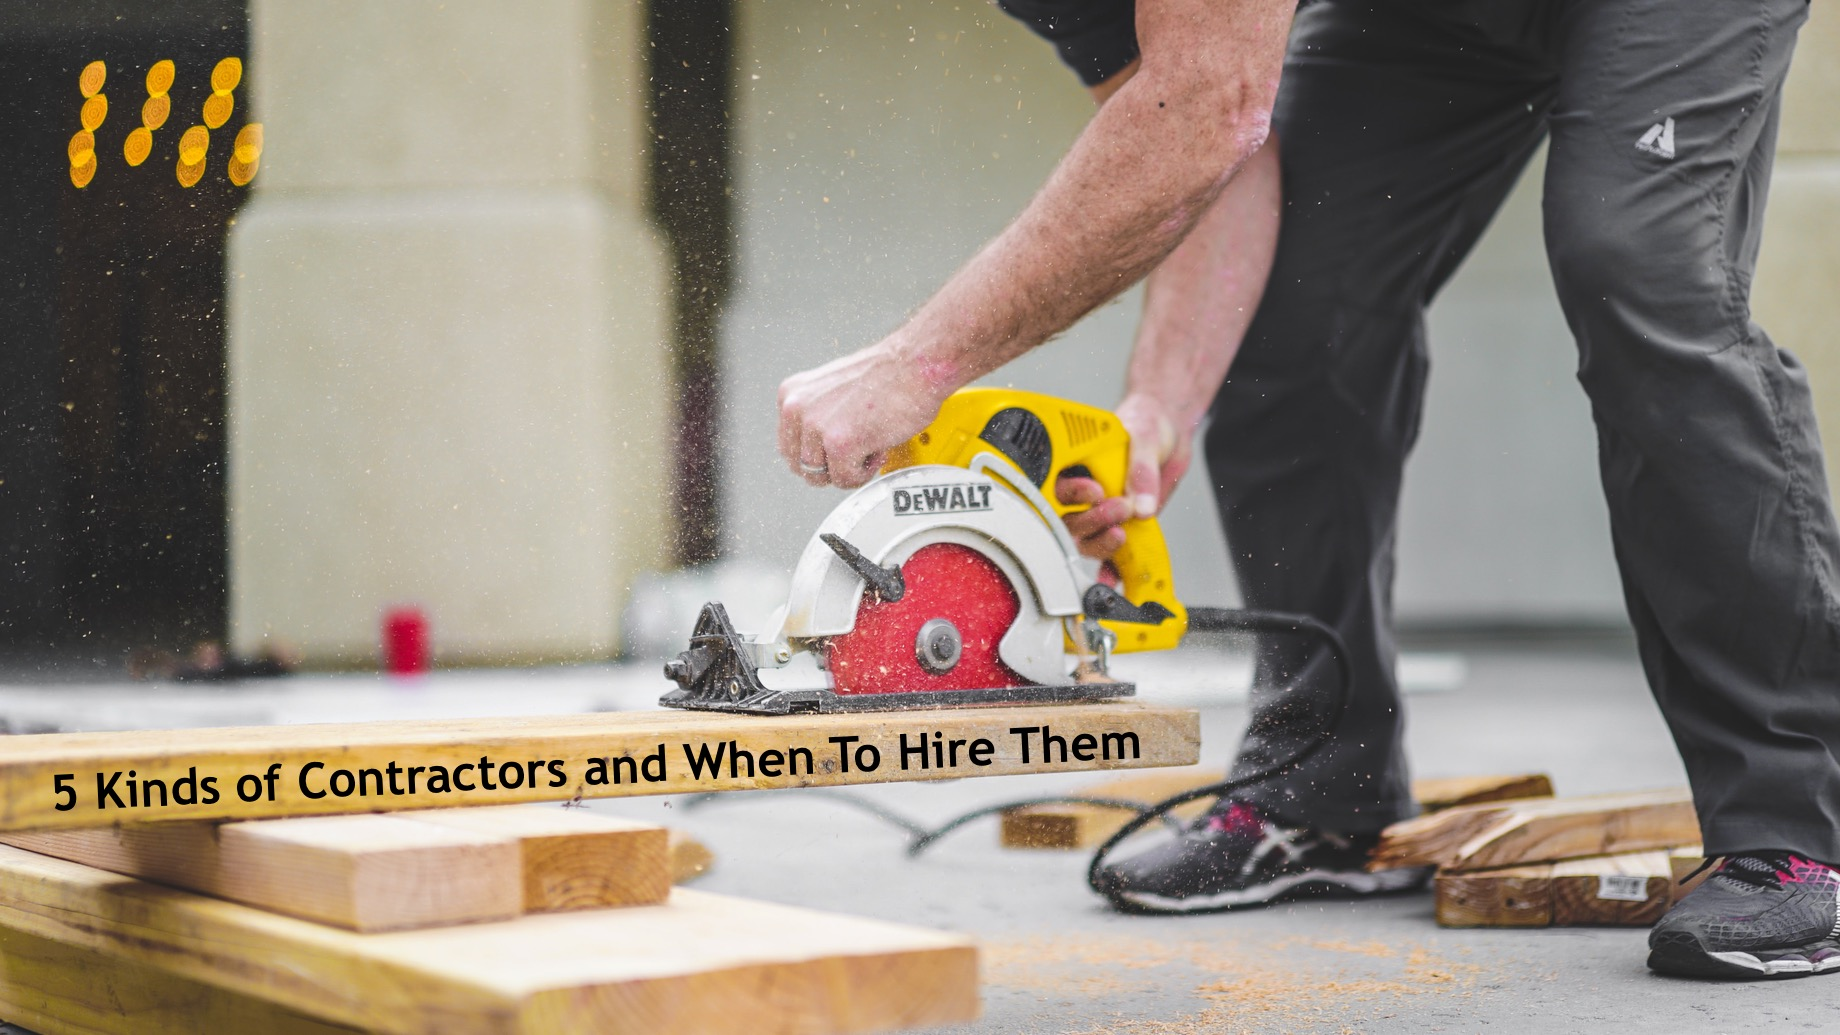 5 Kinds of Contractors and When To Hire Them